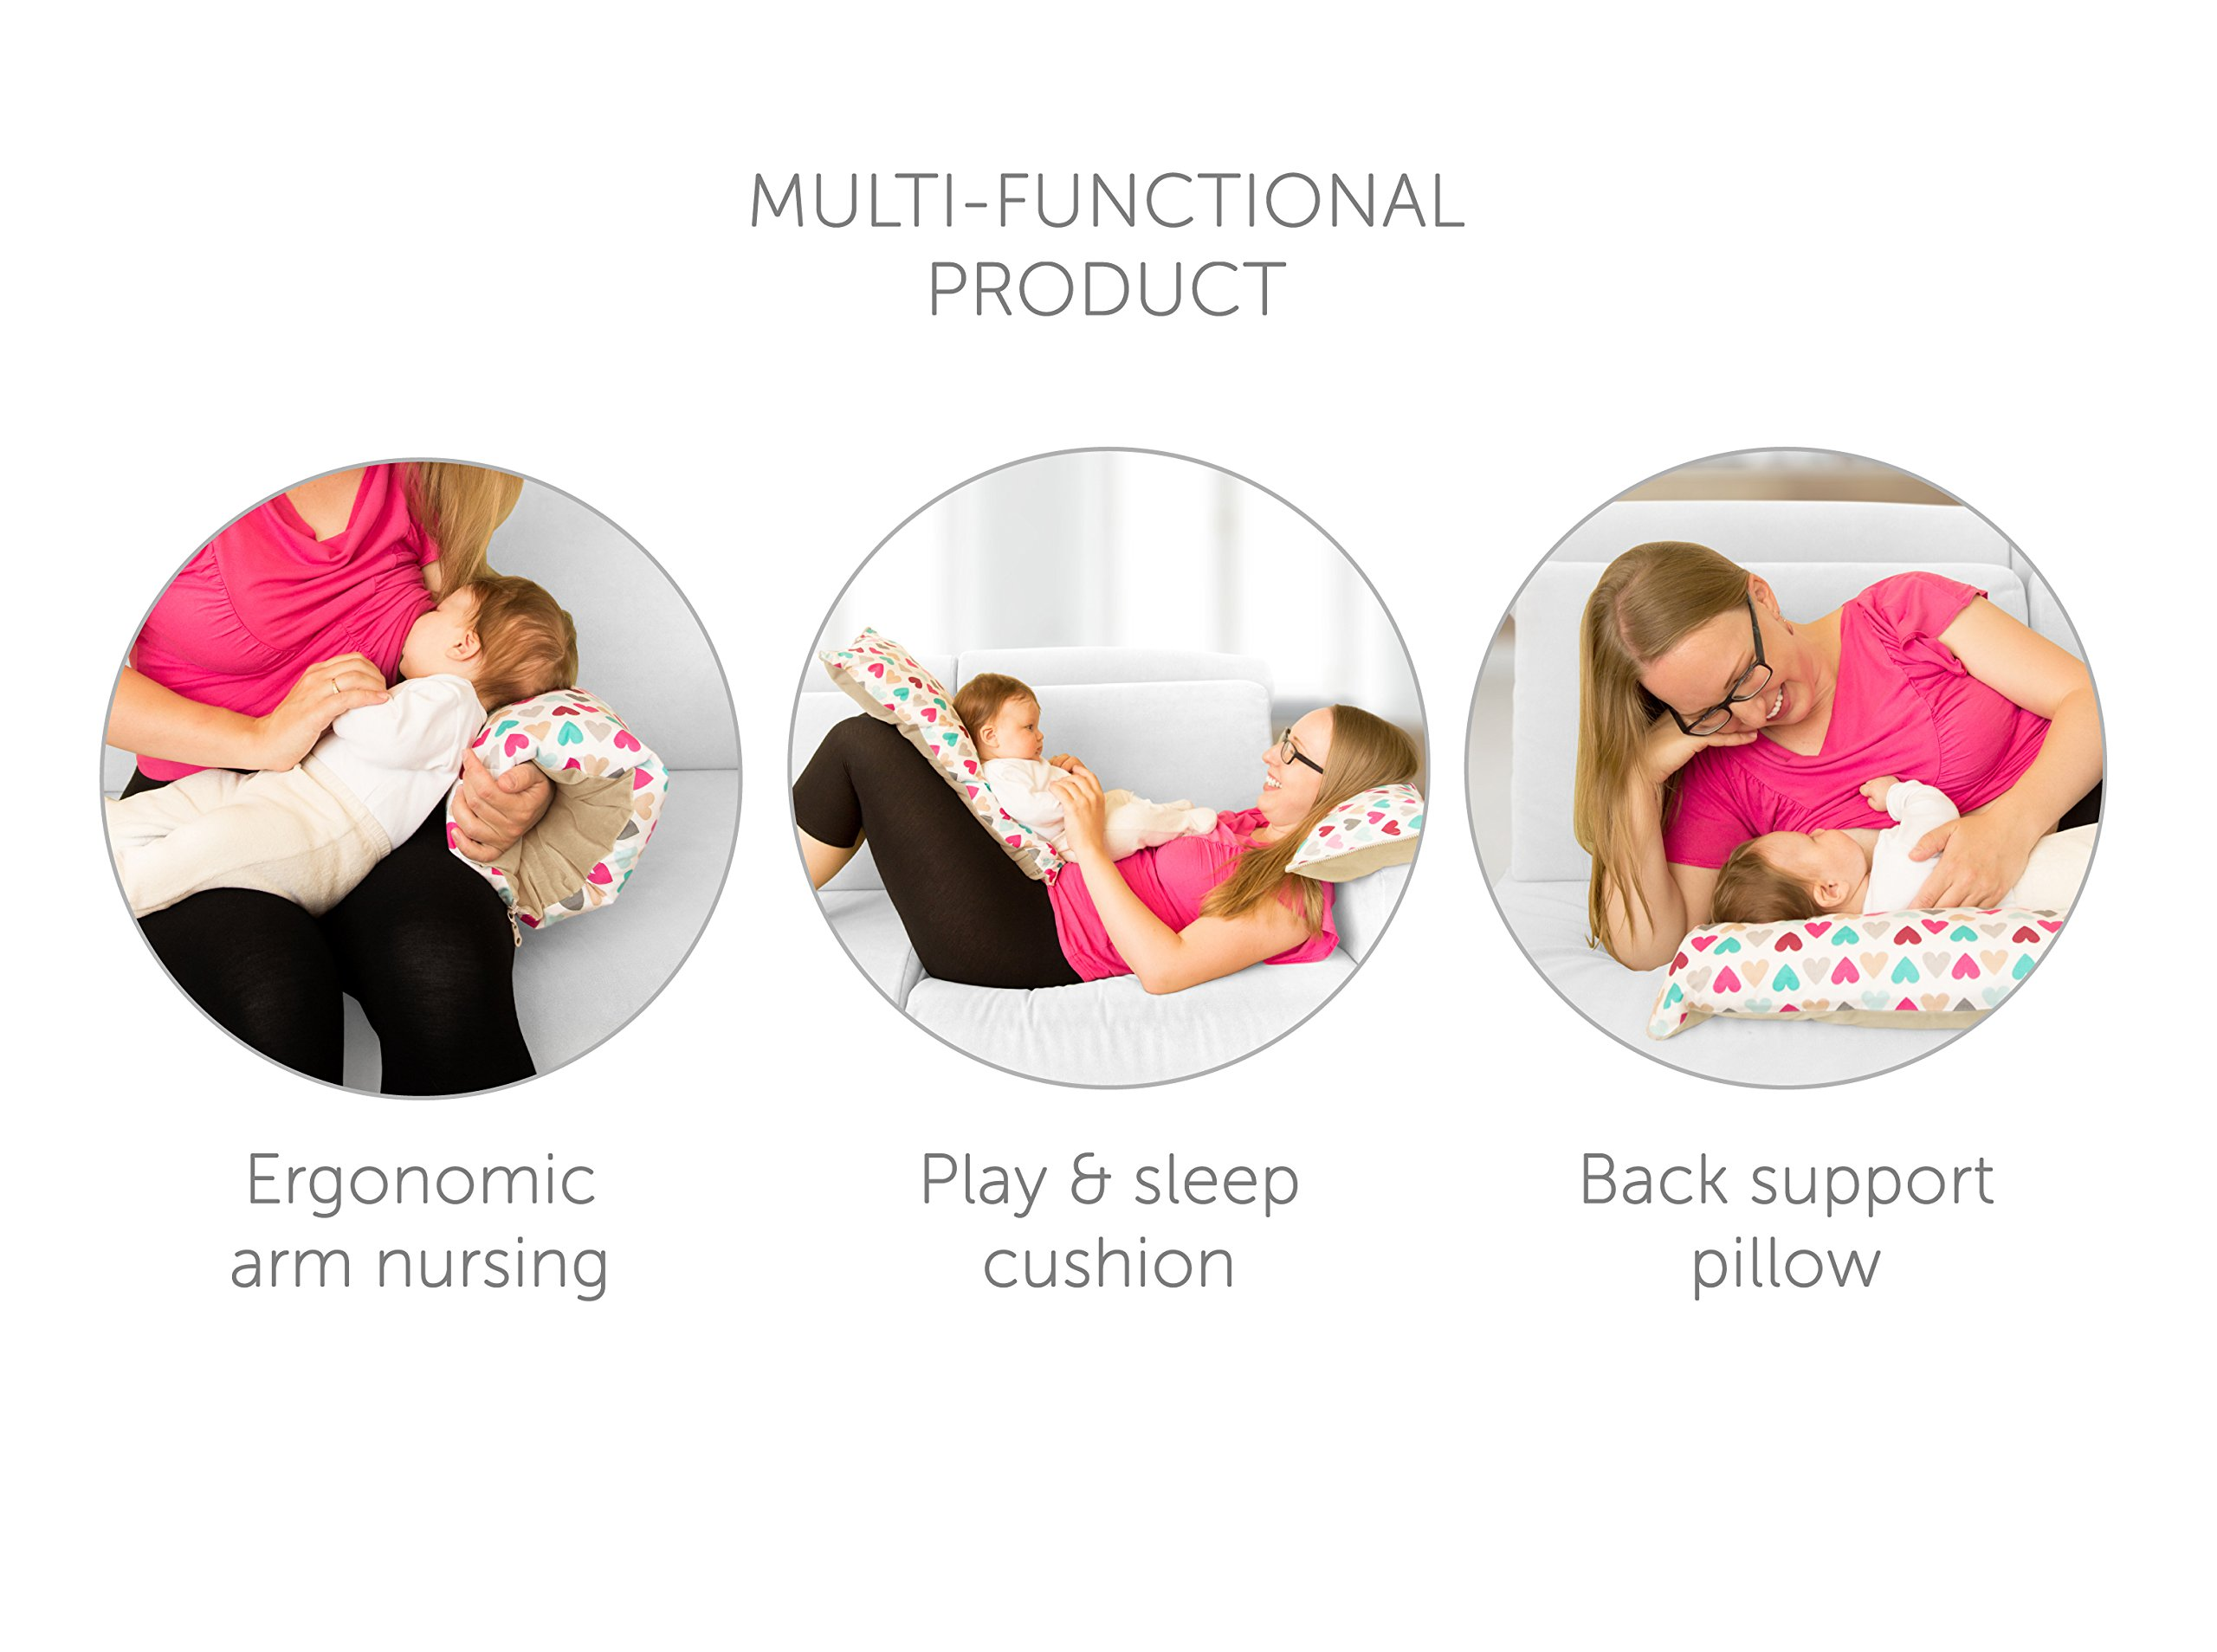 Benjamin Button - Arm Nursing, Breastfeeding Pillow and Positioner   Organic, Natural, Ergonomic Back Support Shape by Benjamin Button (Image #6)